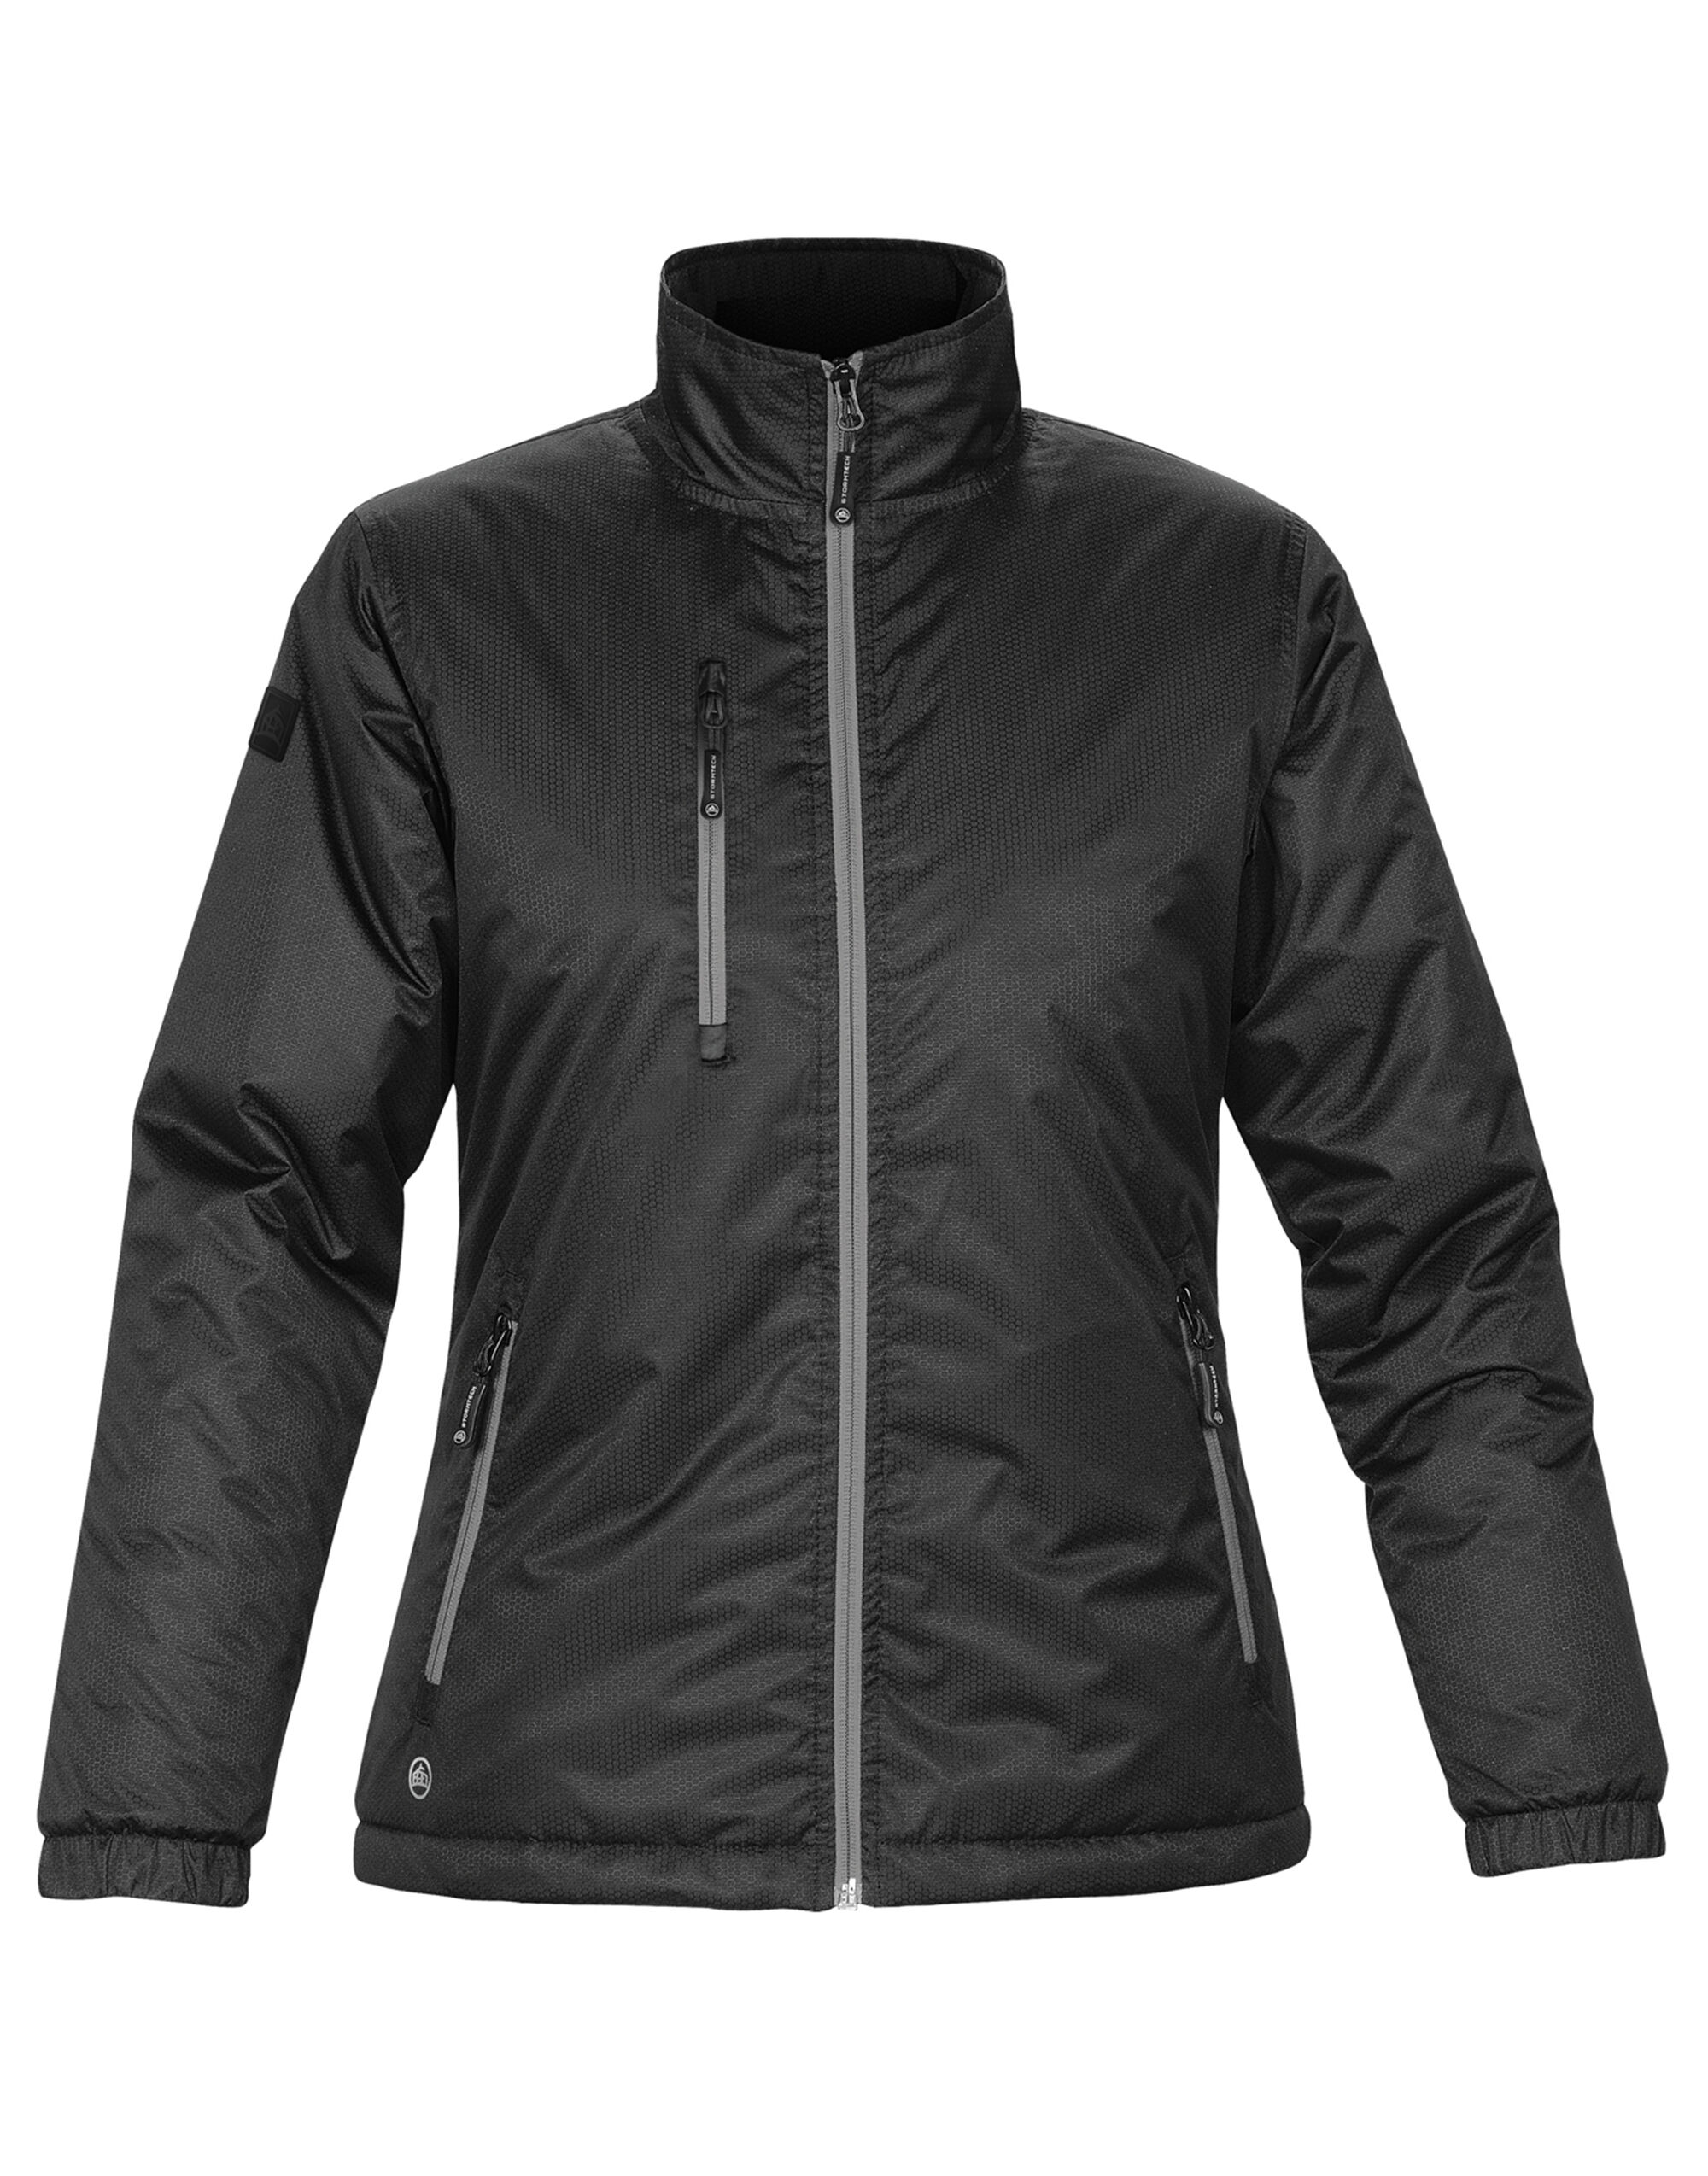 Ladies Axis Jacket